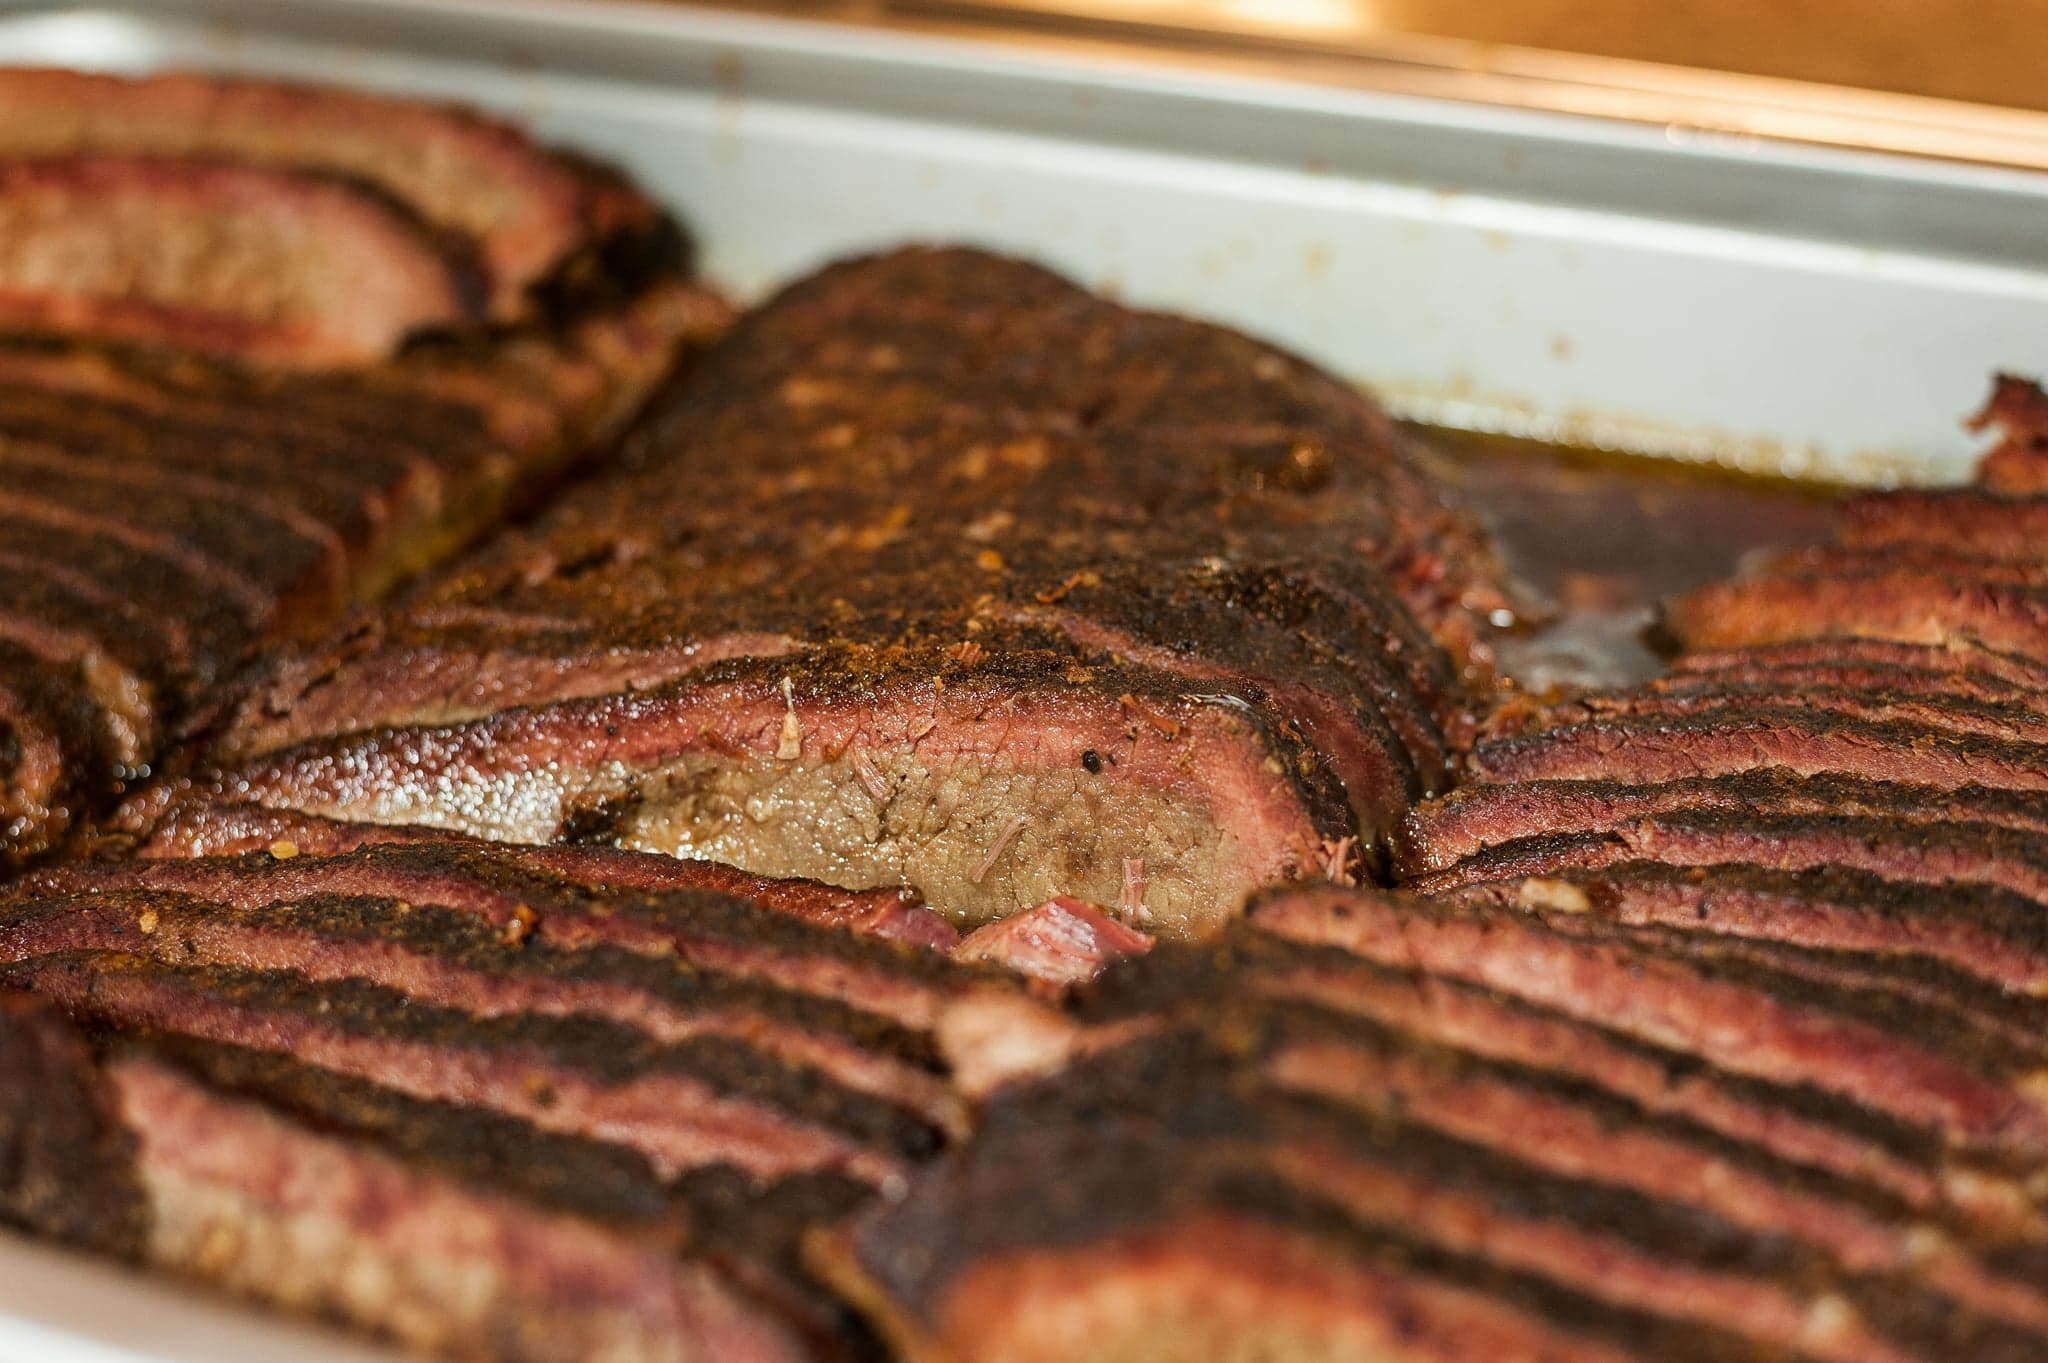 brisket close up.jpg